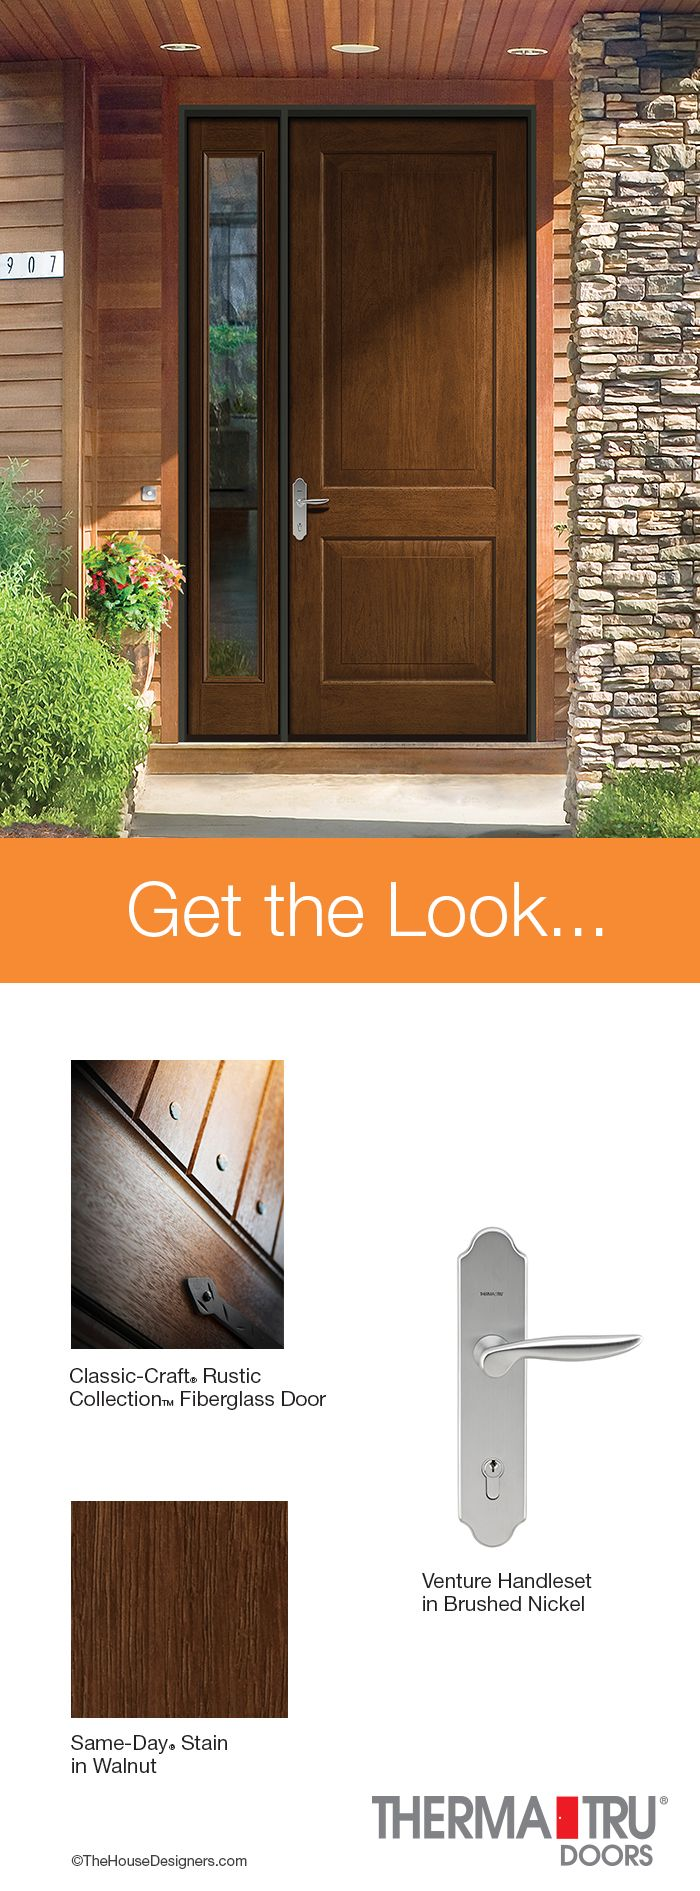 1000 images about get the look on pinterest cherries for Energy efficient entry doors